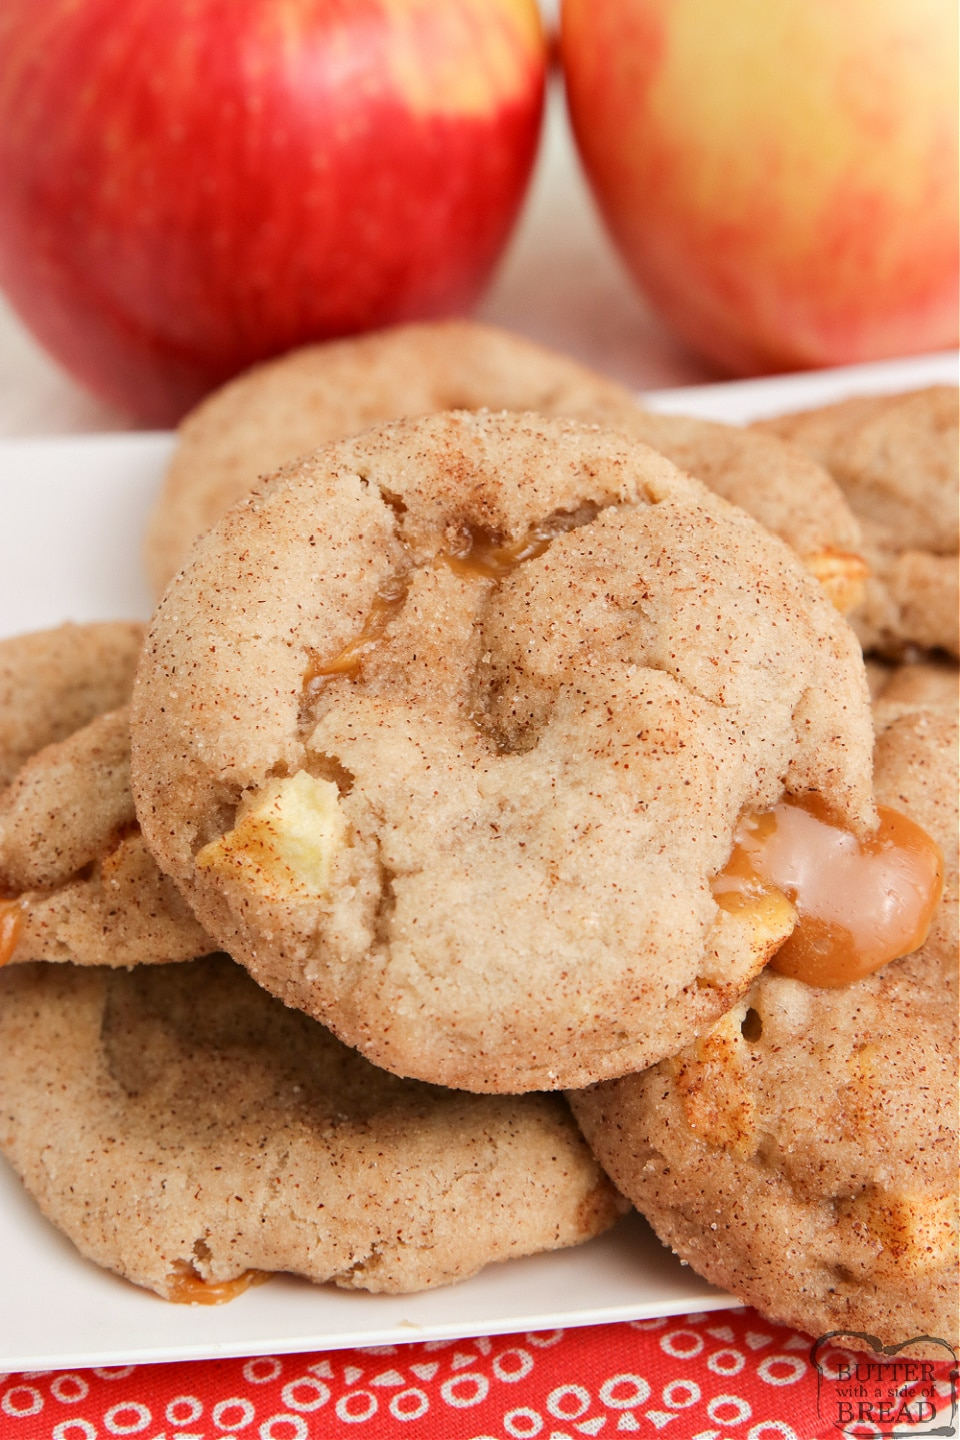 Snickerdoodle Cookies filled with apples and caramel